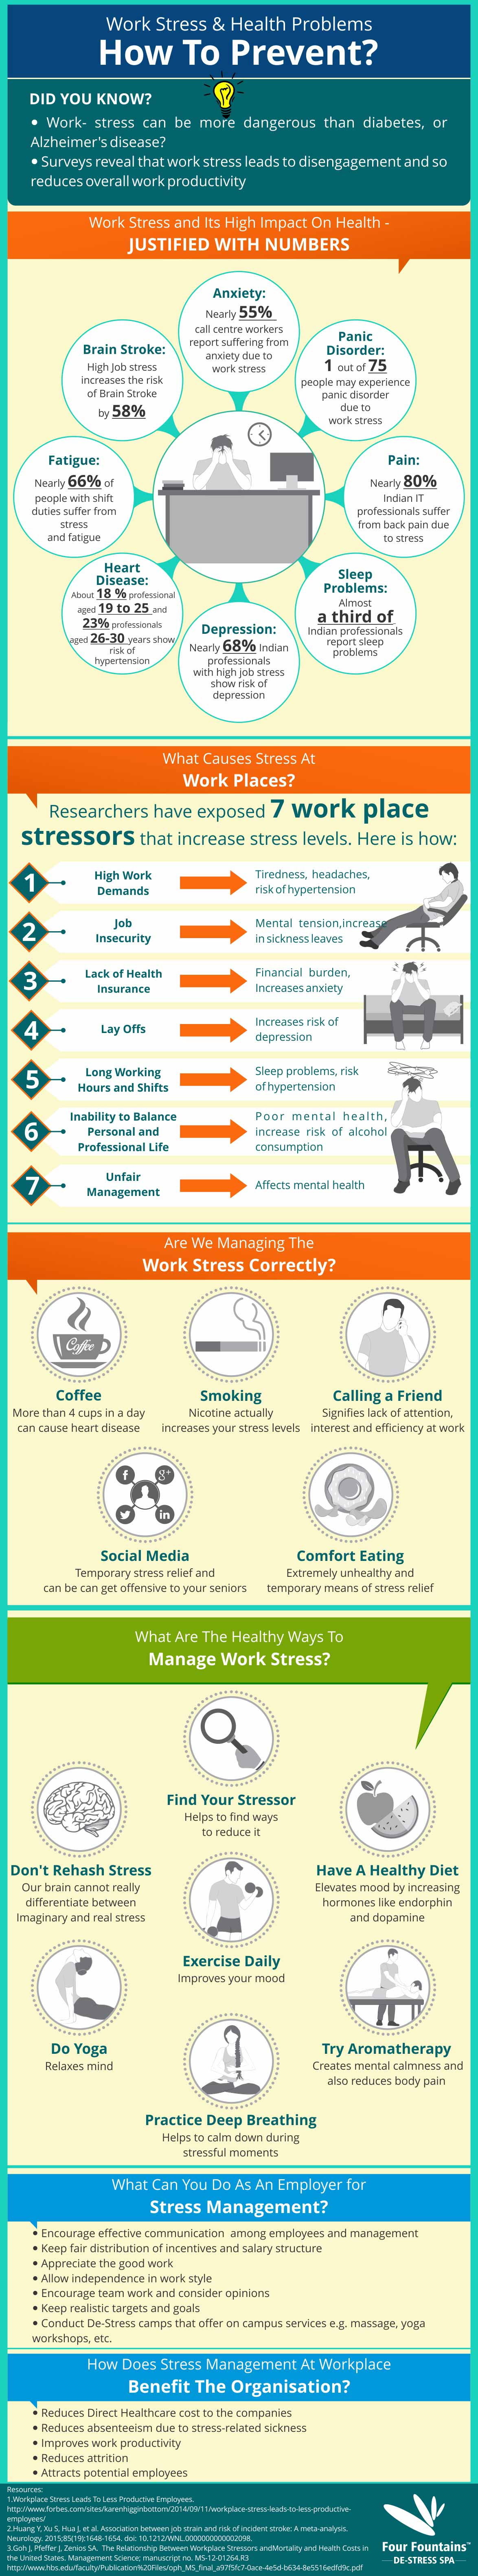 work stress health problems infographic how to prevent share this work stress infographic to your site using the code below